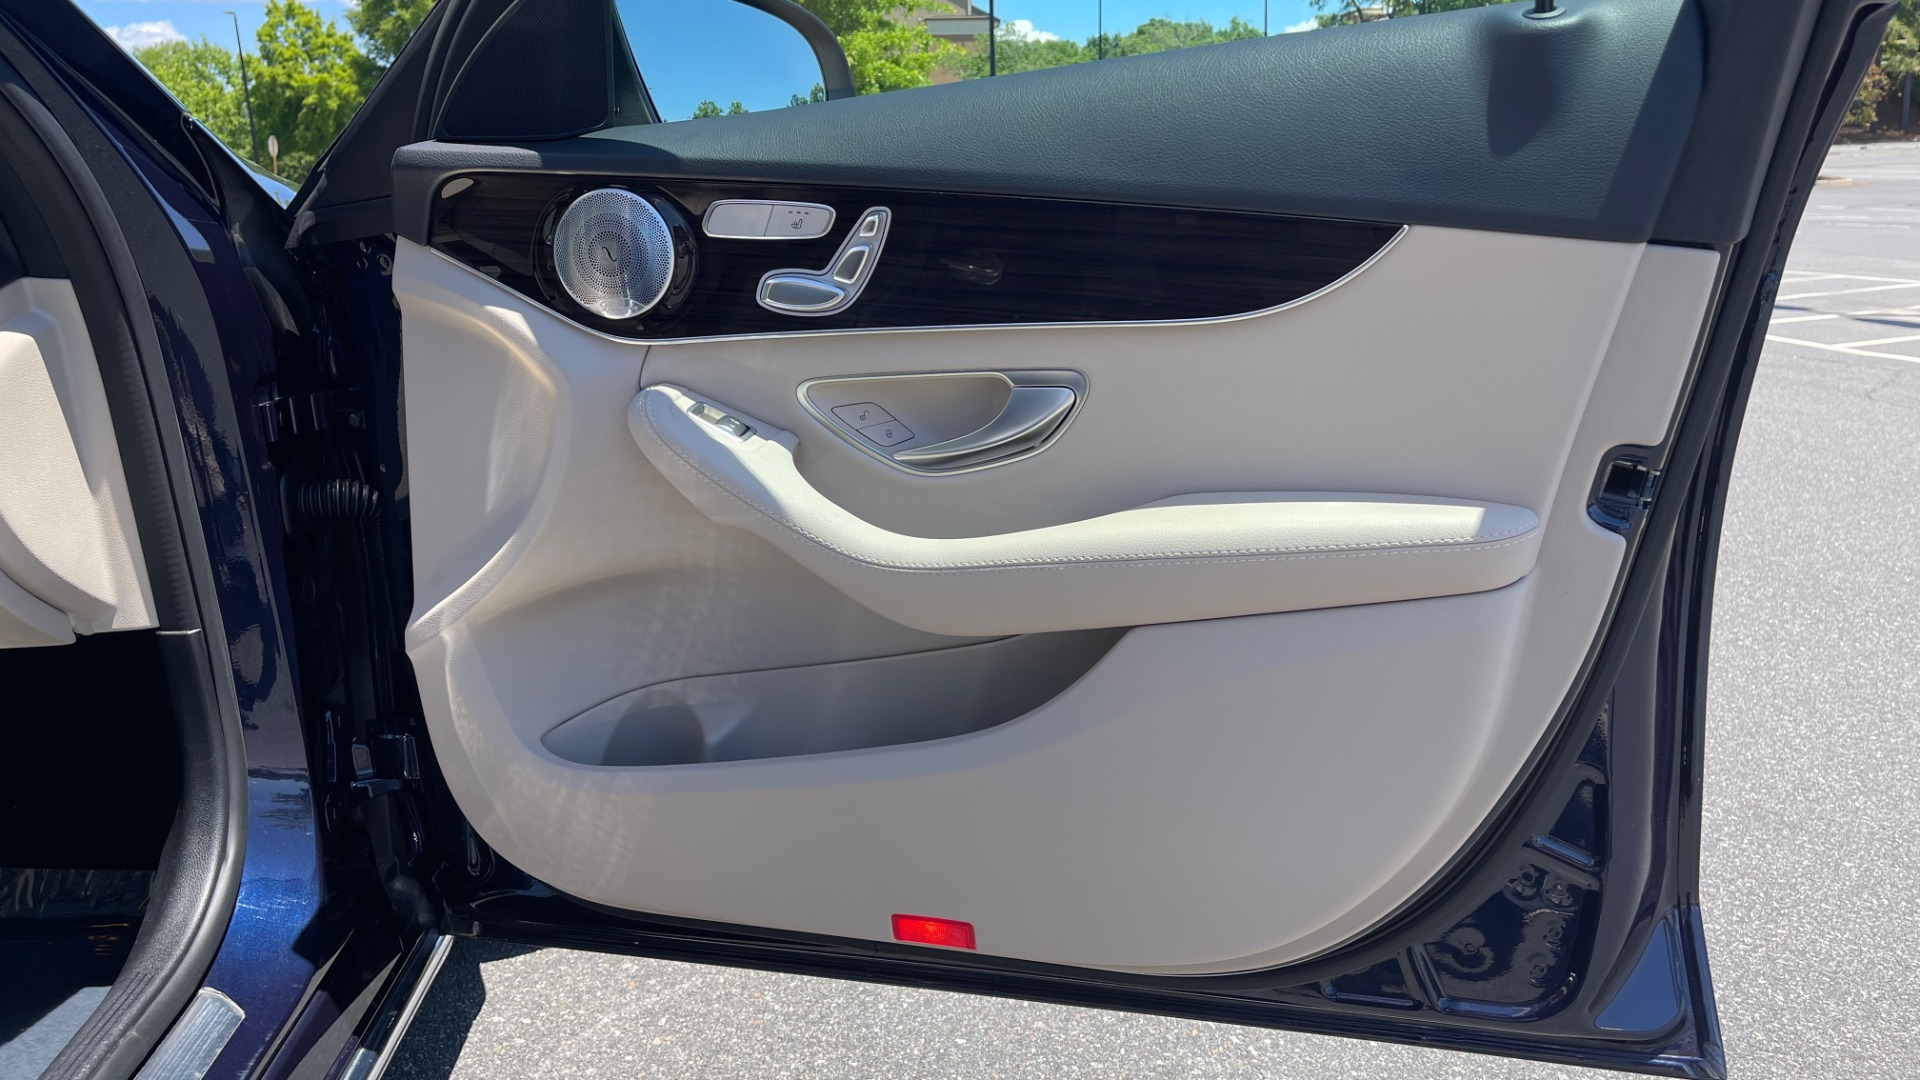 Used 2018 Mercedes-Benz C-CLASS C 300 PREMIUM / KEYLESS-GO / PANO-ROOF / BURMESTER / REARVIEW for sale $29,495 at Formula Imports in Charlotte NC 28227 66